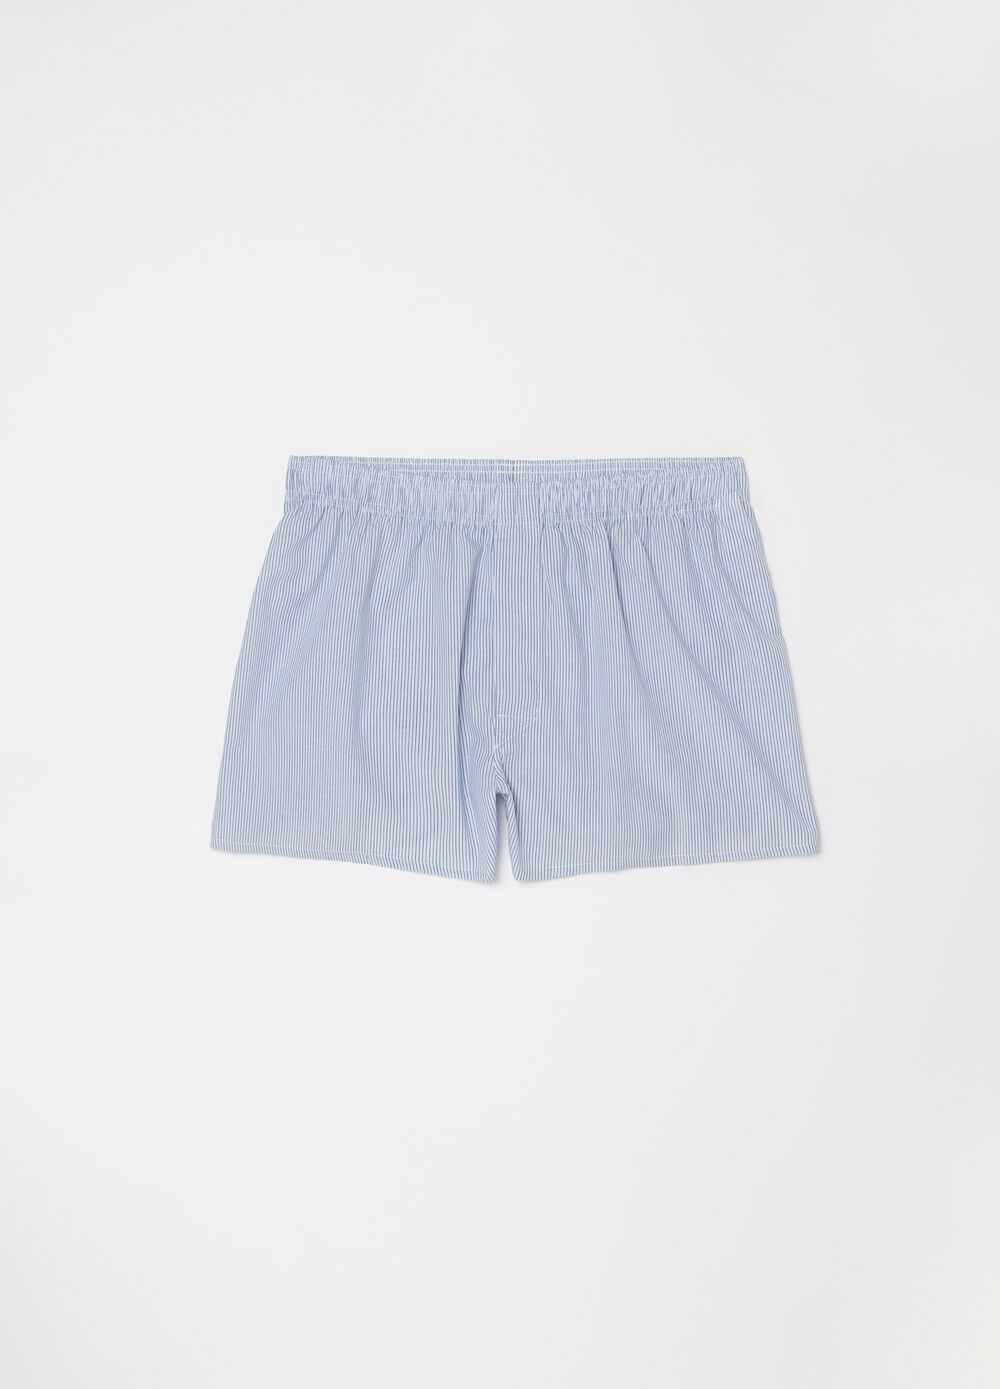 Two-pack patterned boxer shorts in 100% cotton